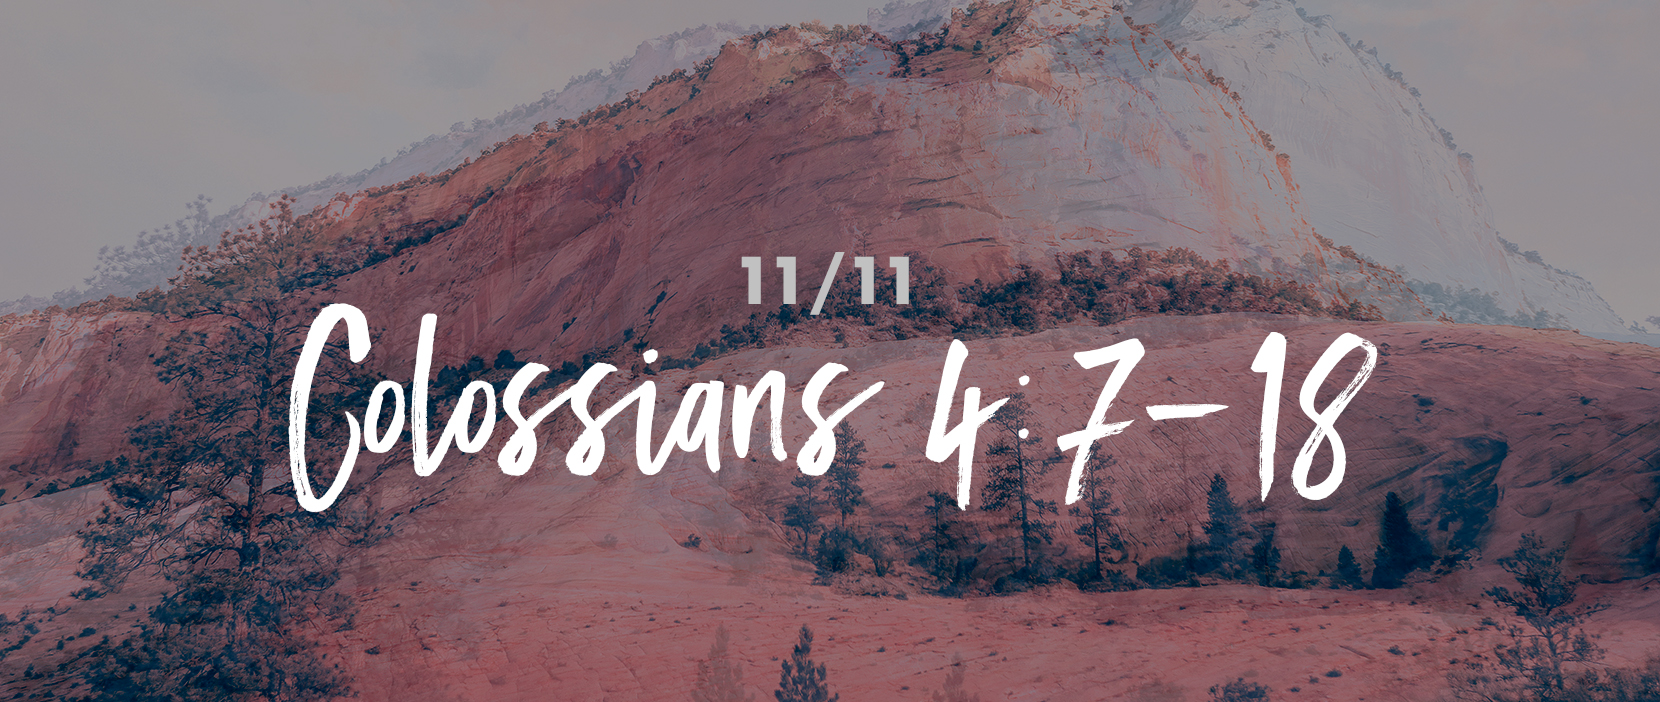 Main image for Part 11 – Colossians 4:7-18